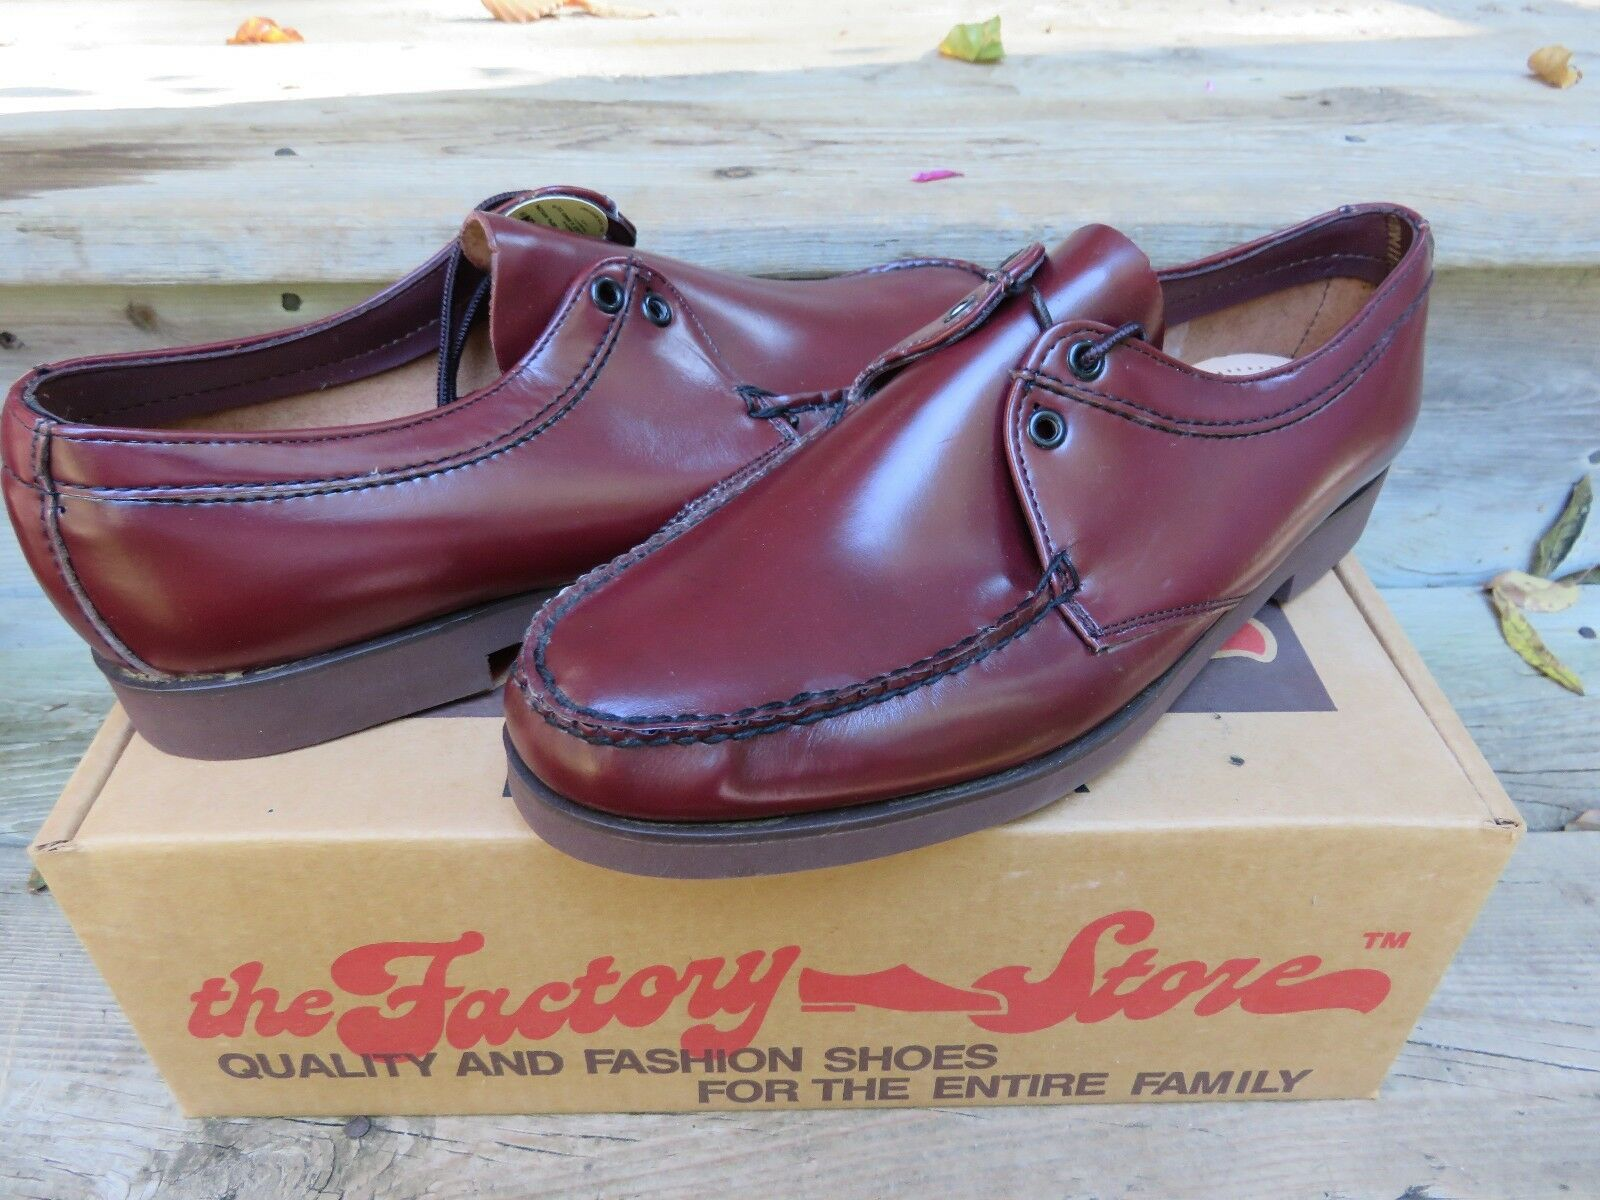 NEW The Factory Store Burgundy Oxford Style Casual Dress Shoes Size 10 D/B Scarpe classiche da uomo